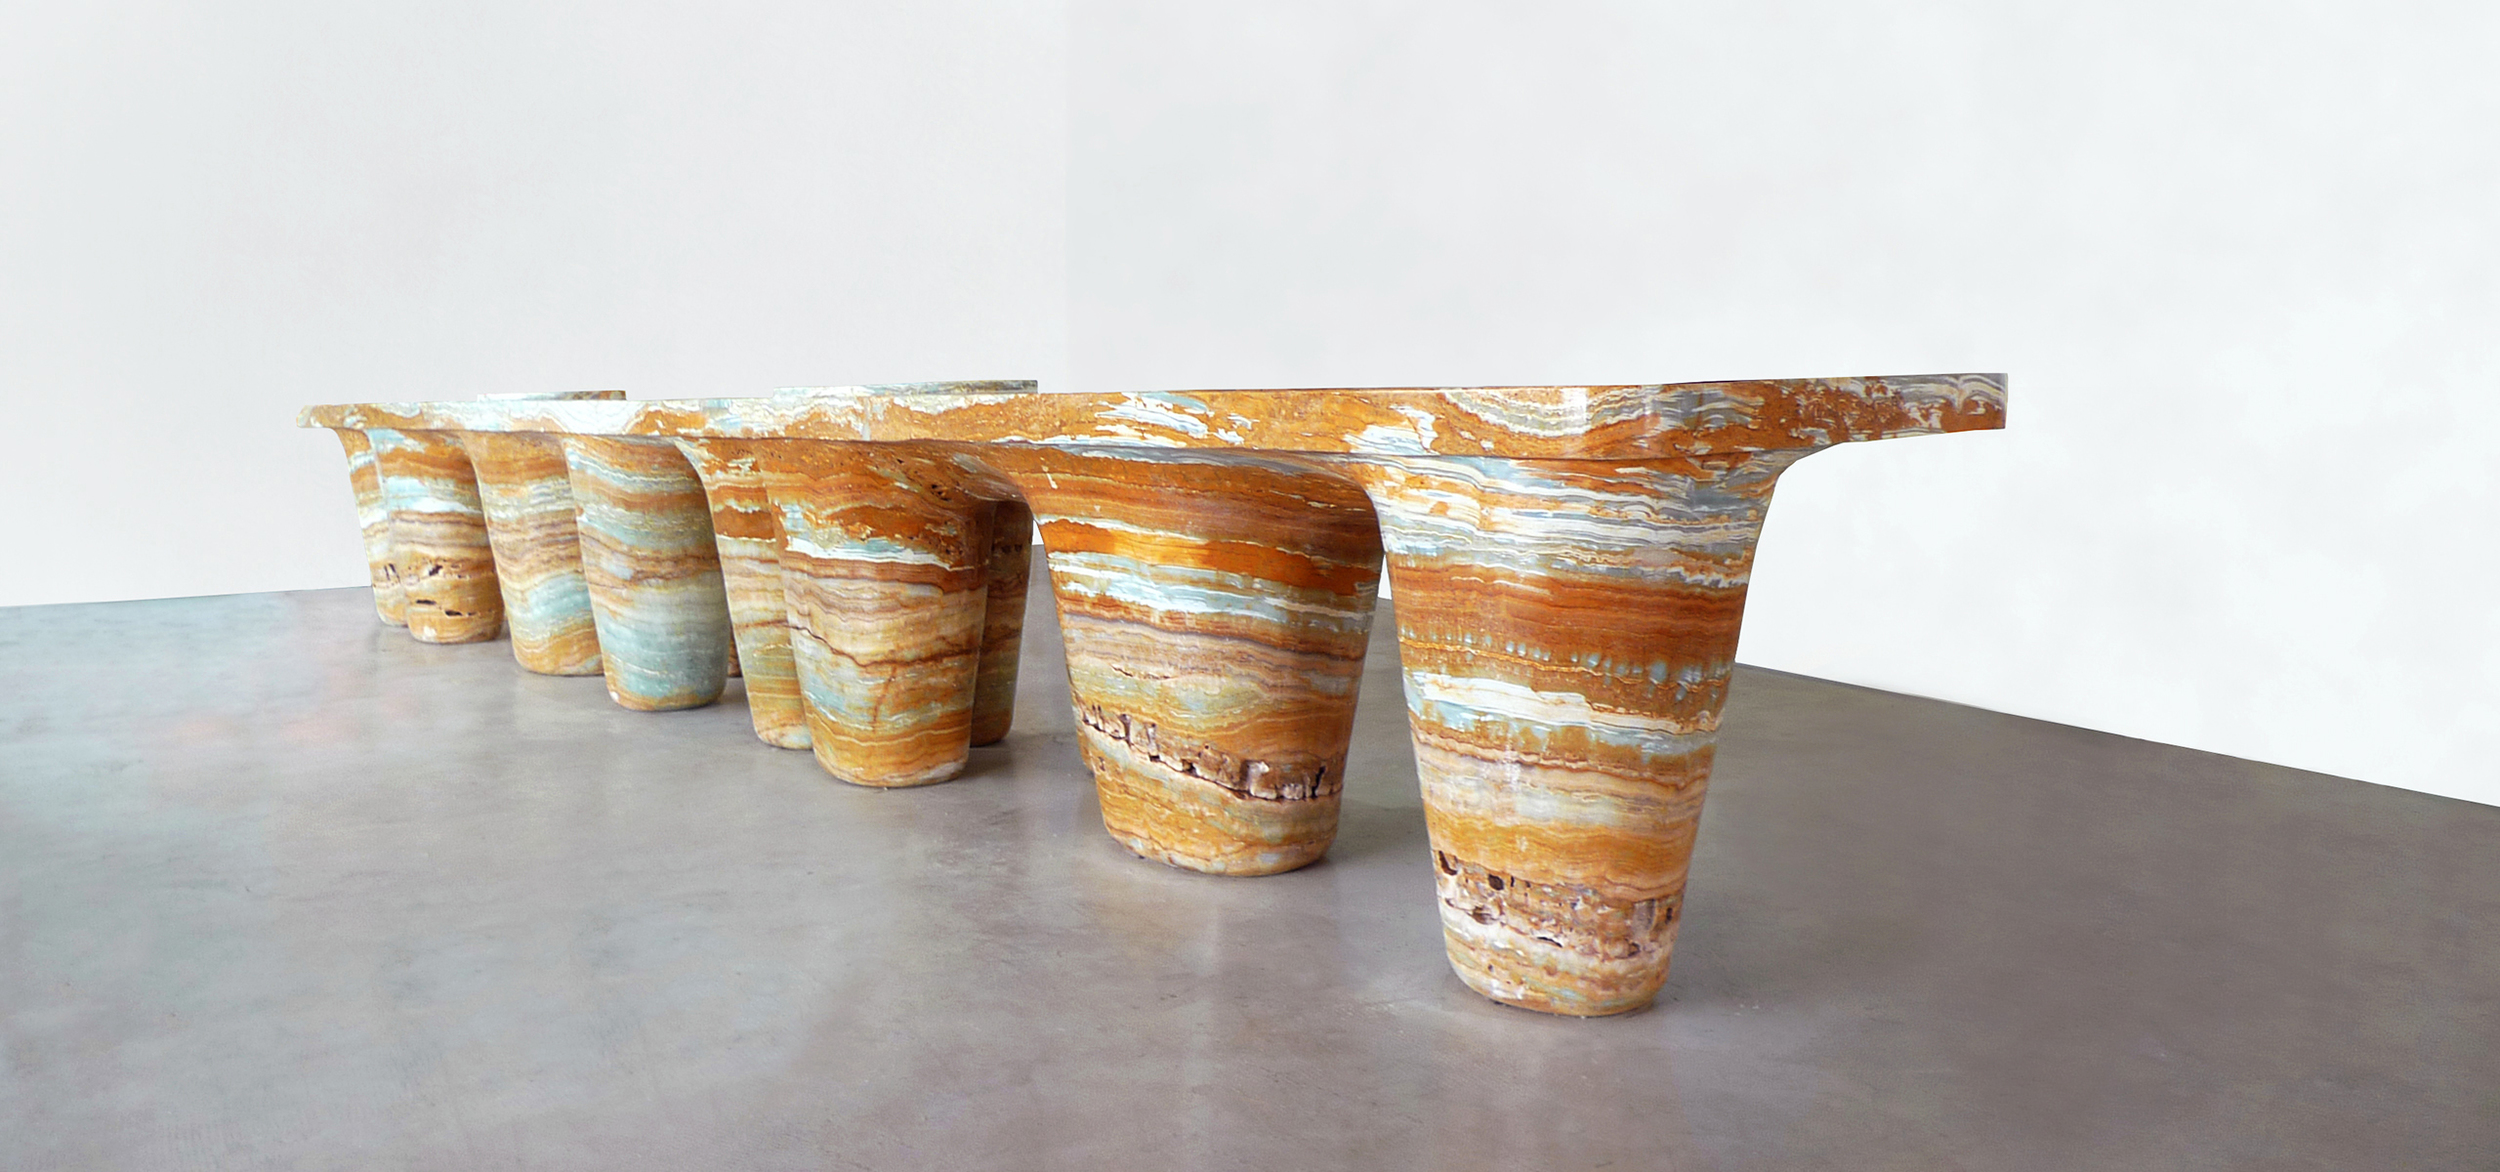 Table made of orange onyx stone created for an art exhibition by interior and furniture designer Johannes Torpe